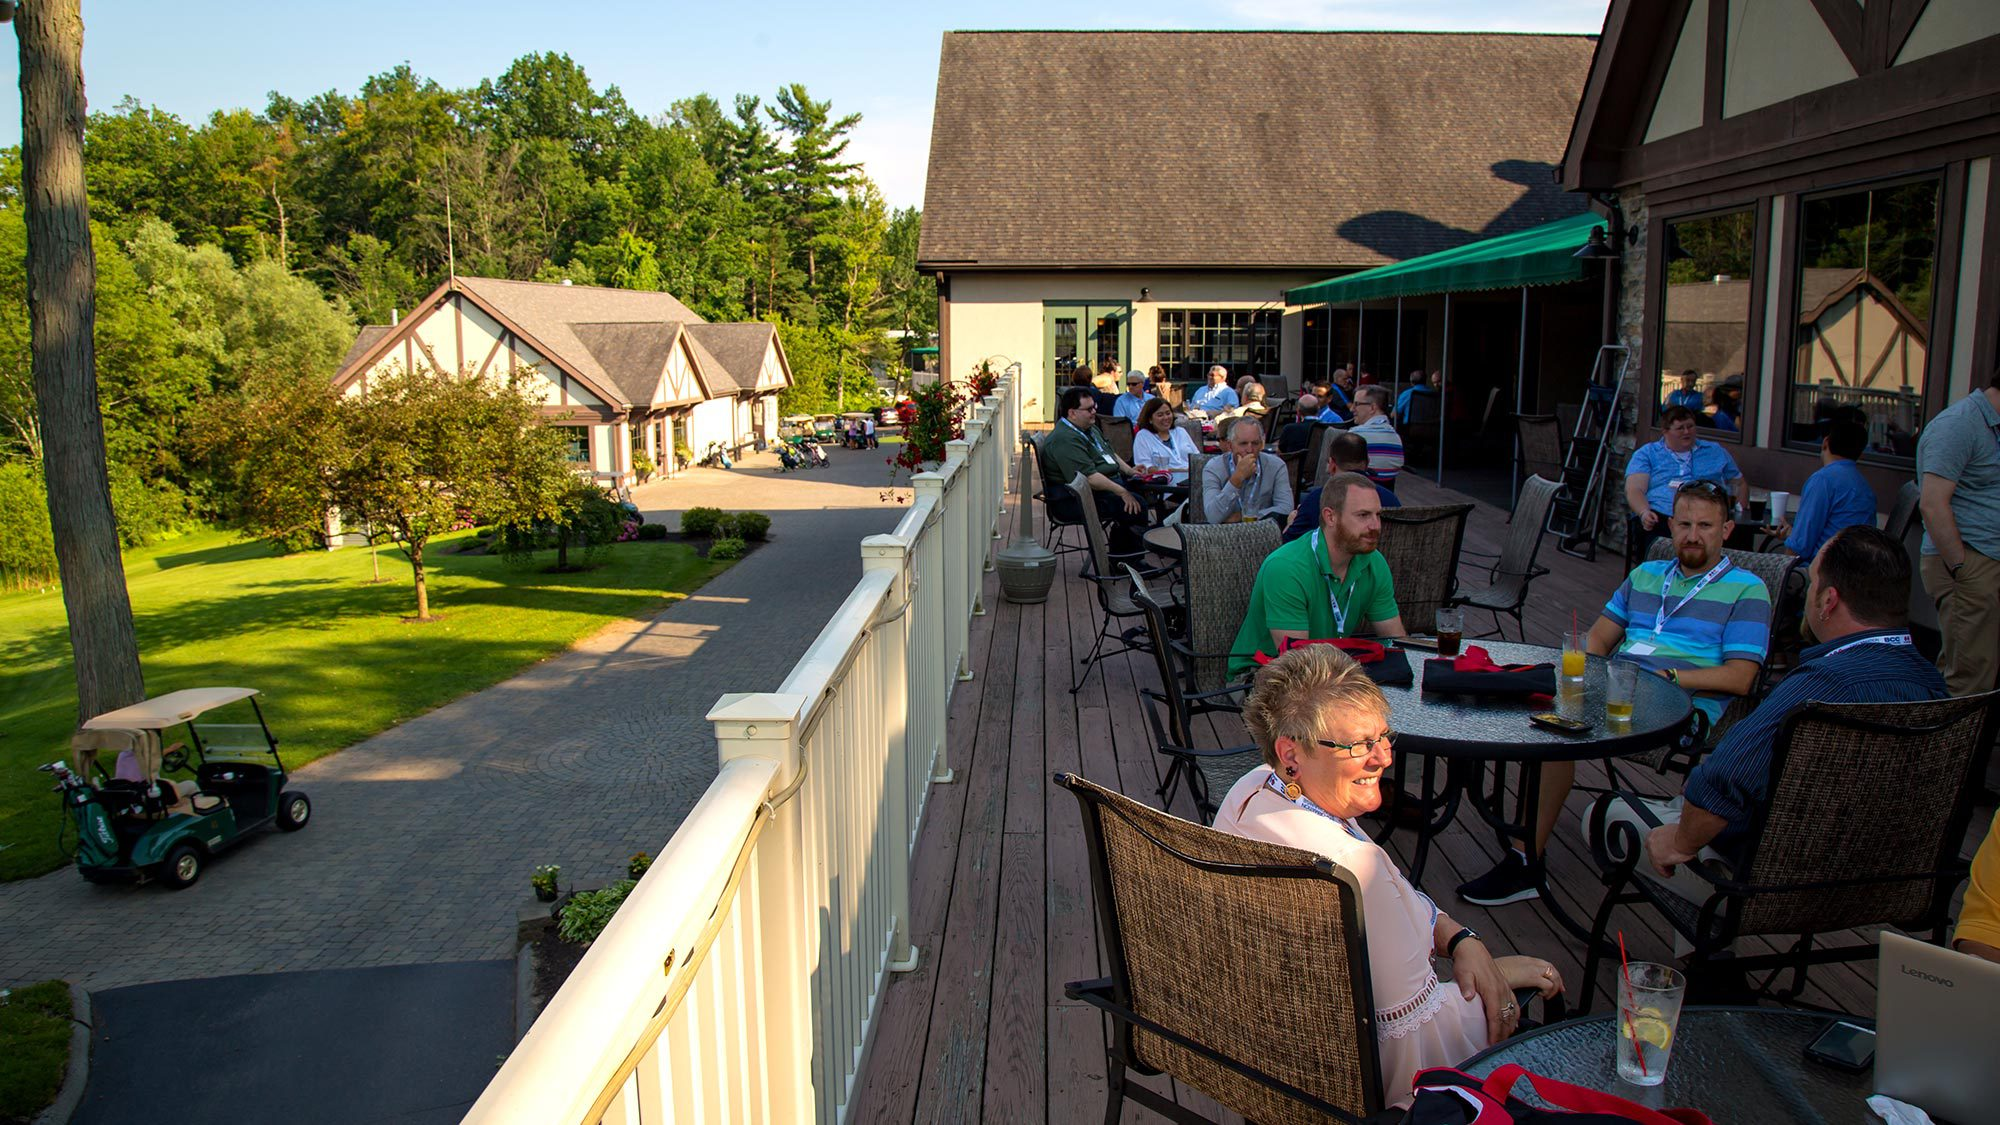 Ending the first day of the conference on the deck of Brook-Lea Country Club.